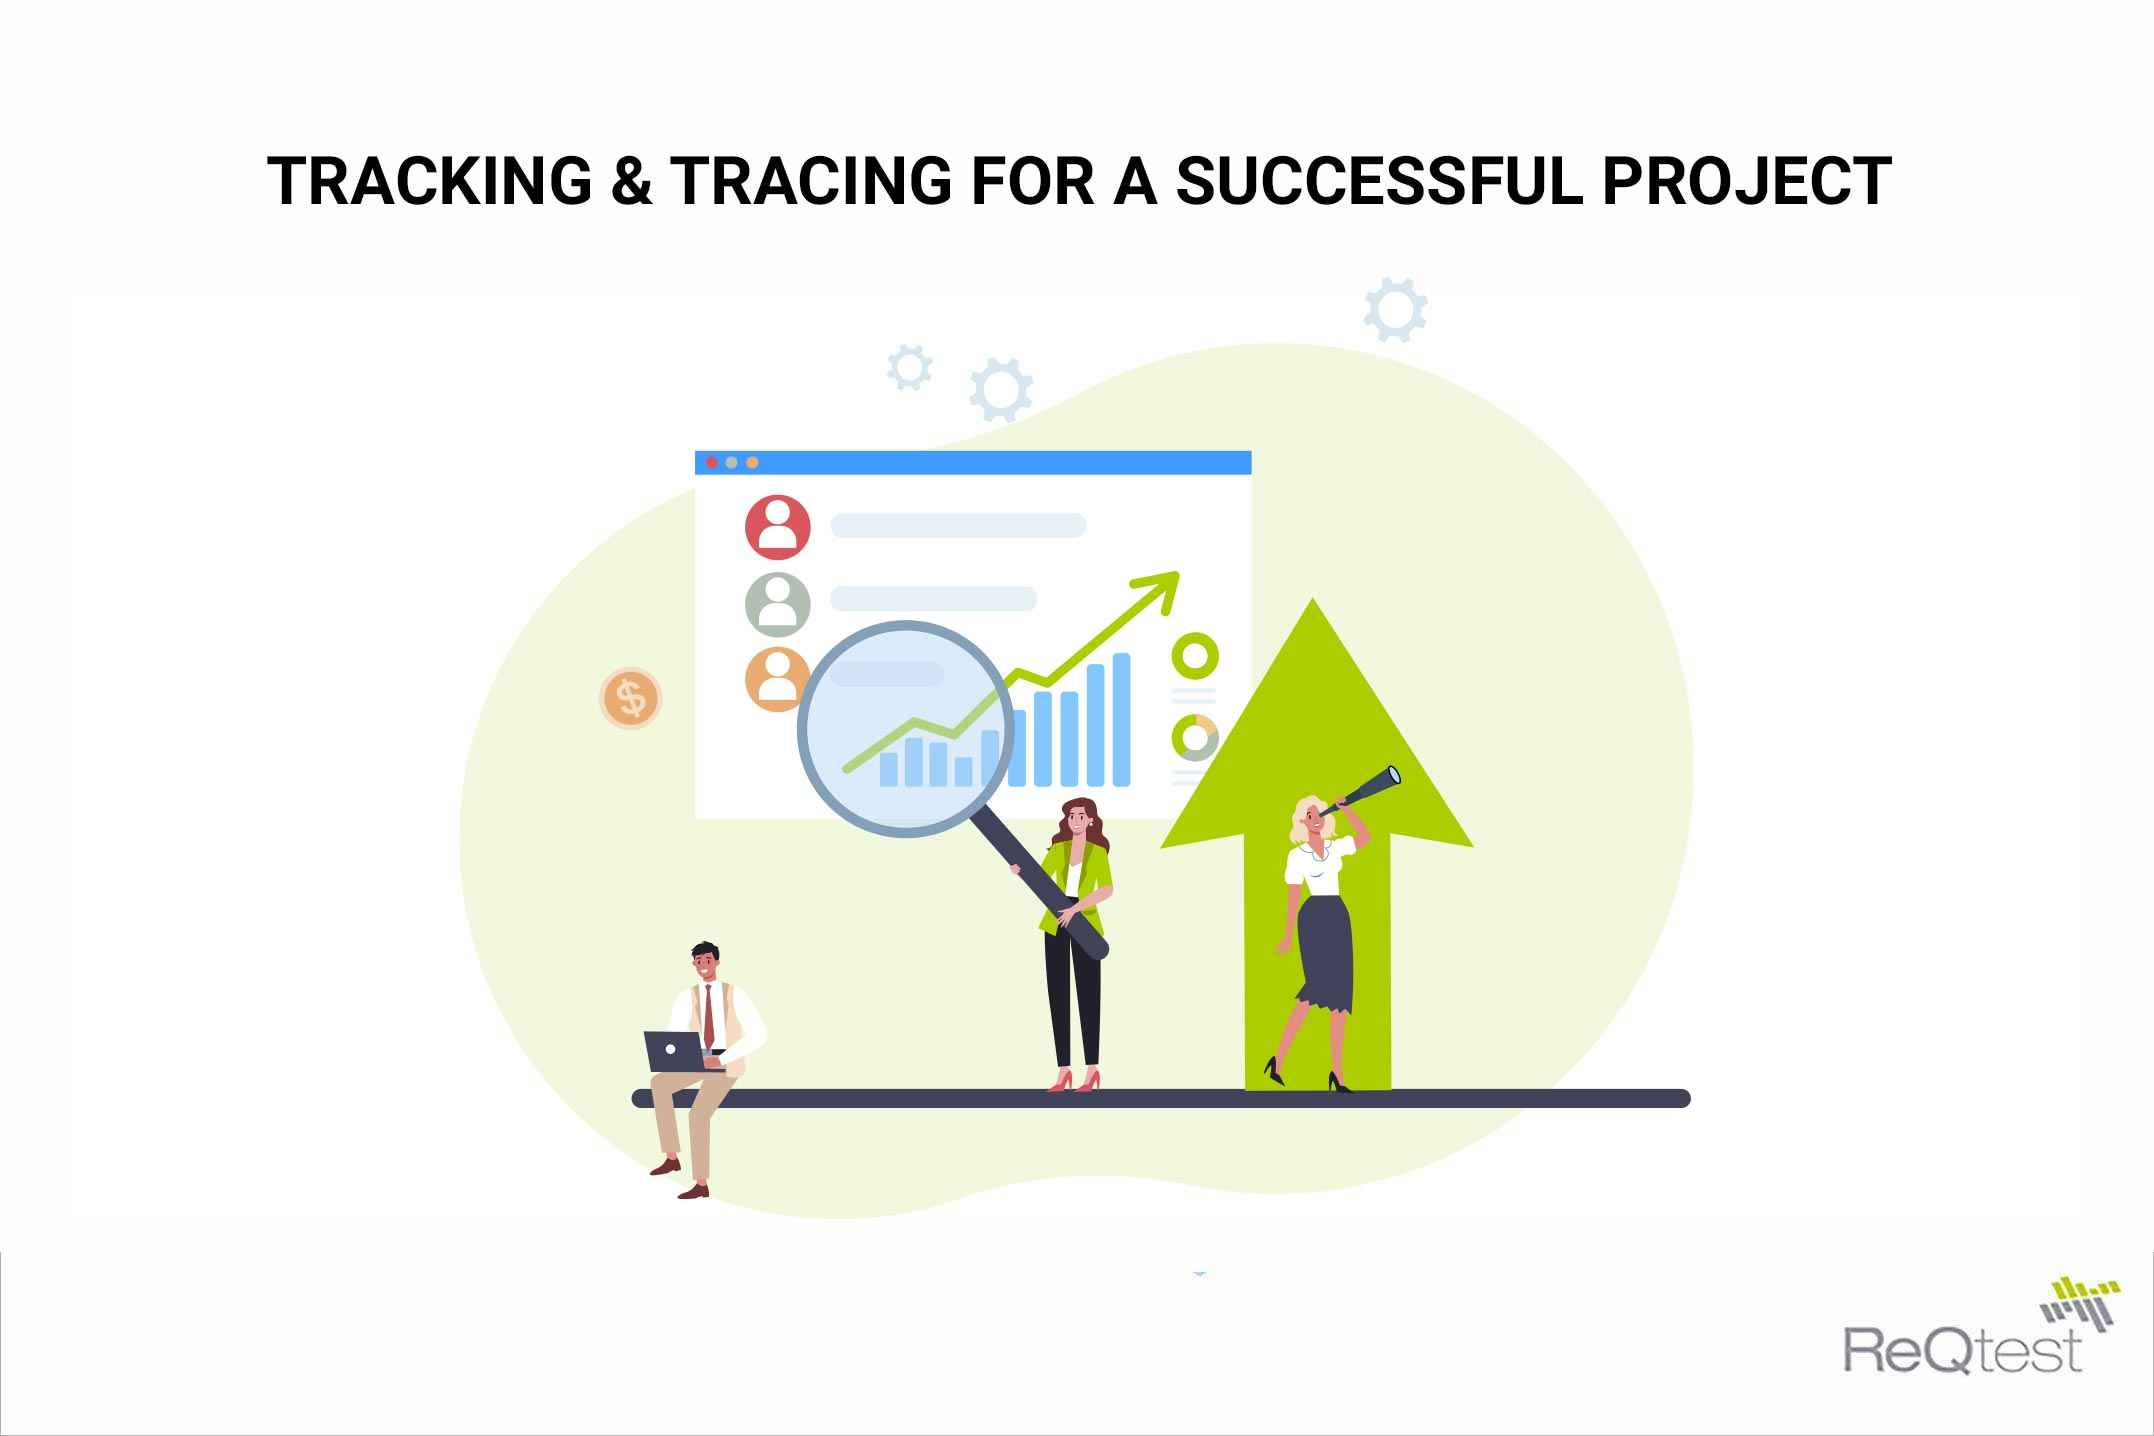 Tracking and tracing